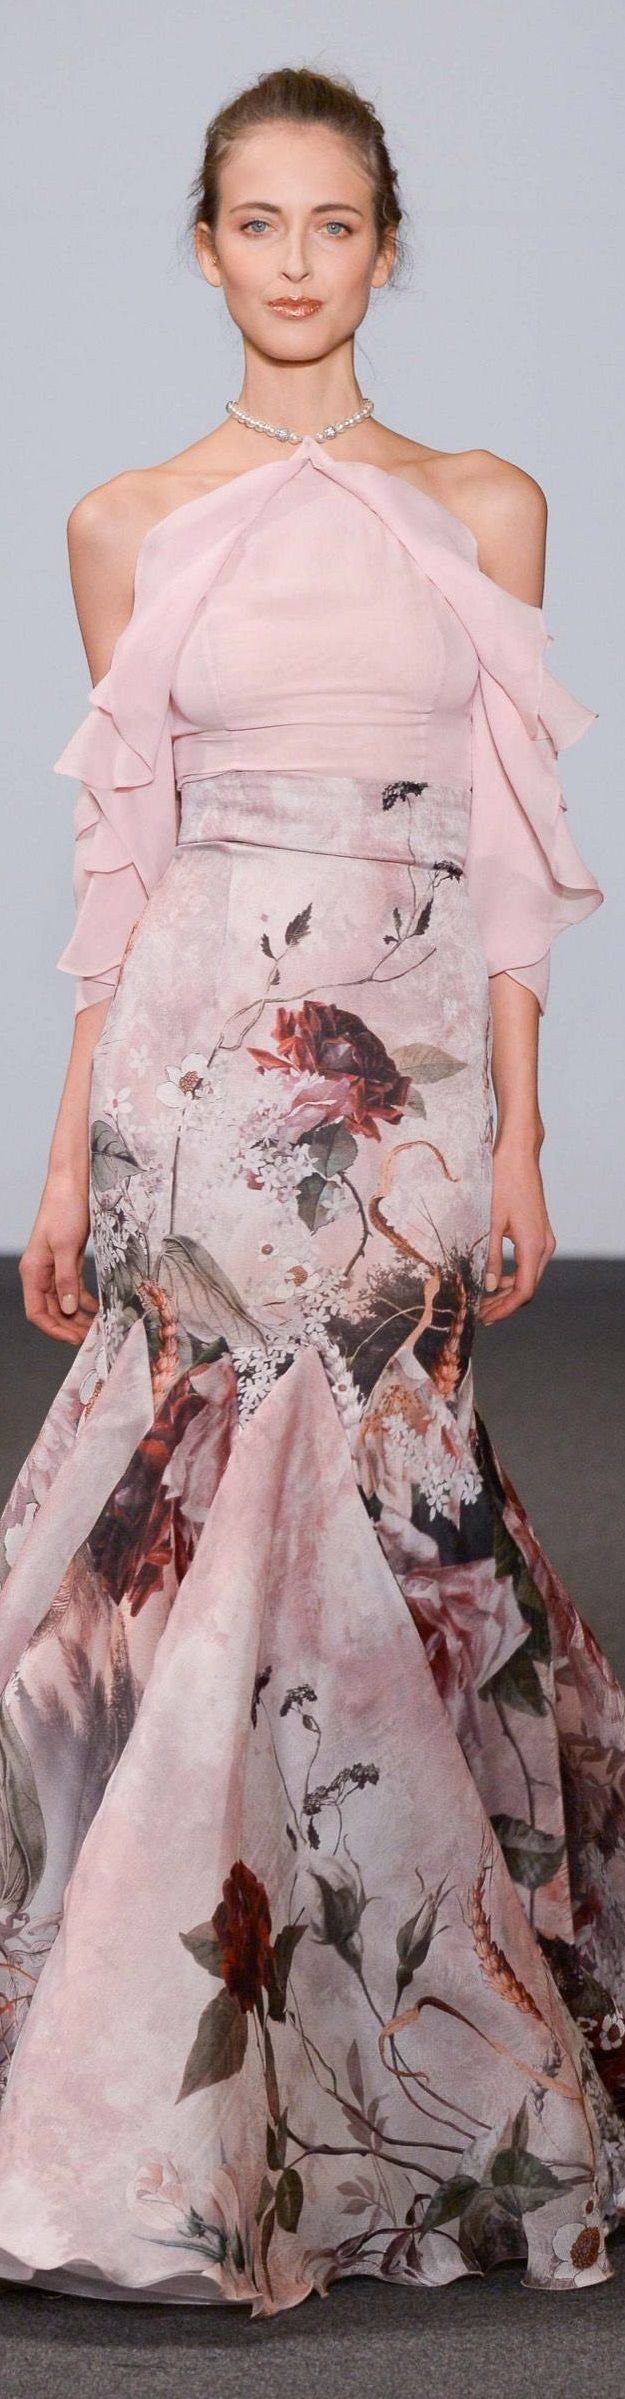 Dany Atrache spring 2016 Couture